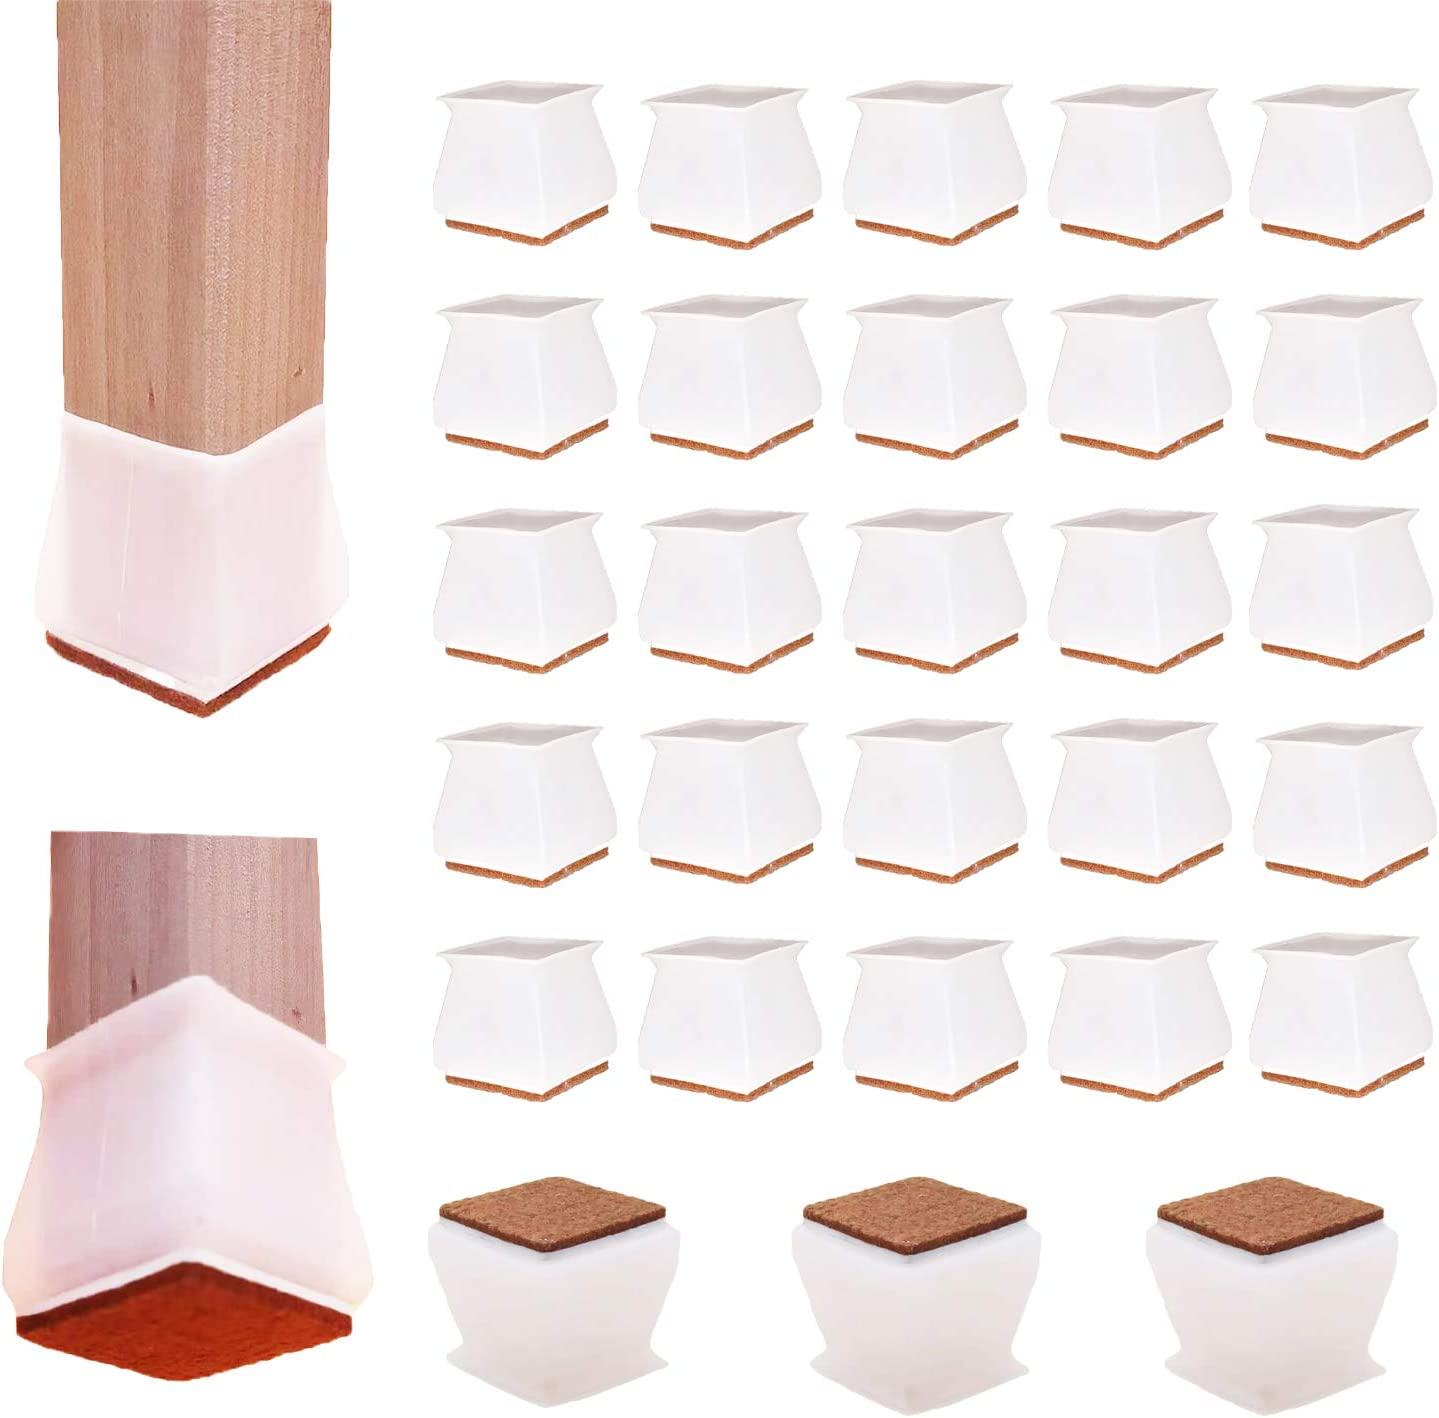 32 Pcs Chair Leg Cups Square(Fits 1.37-1.57 inch)-Anti-Slip Felt Bottom Soft Silicone Furniture Foot Protector Pads-Free Moving Table Leg Covers-Stool Leg Protectors Covers to Prevent Floor Scratches